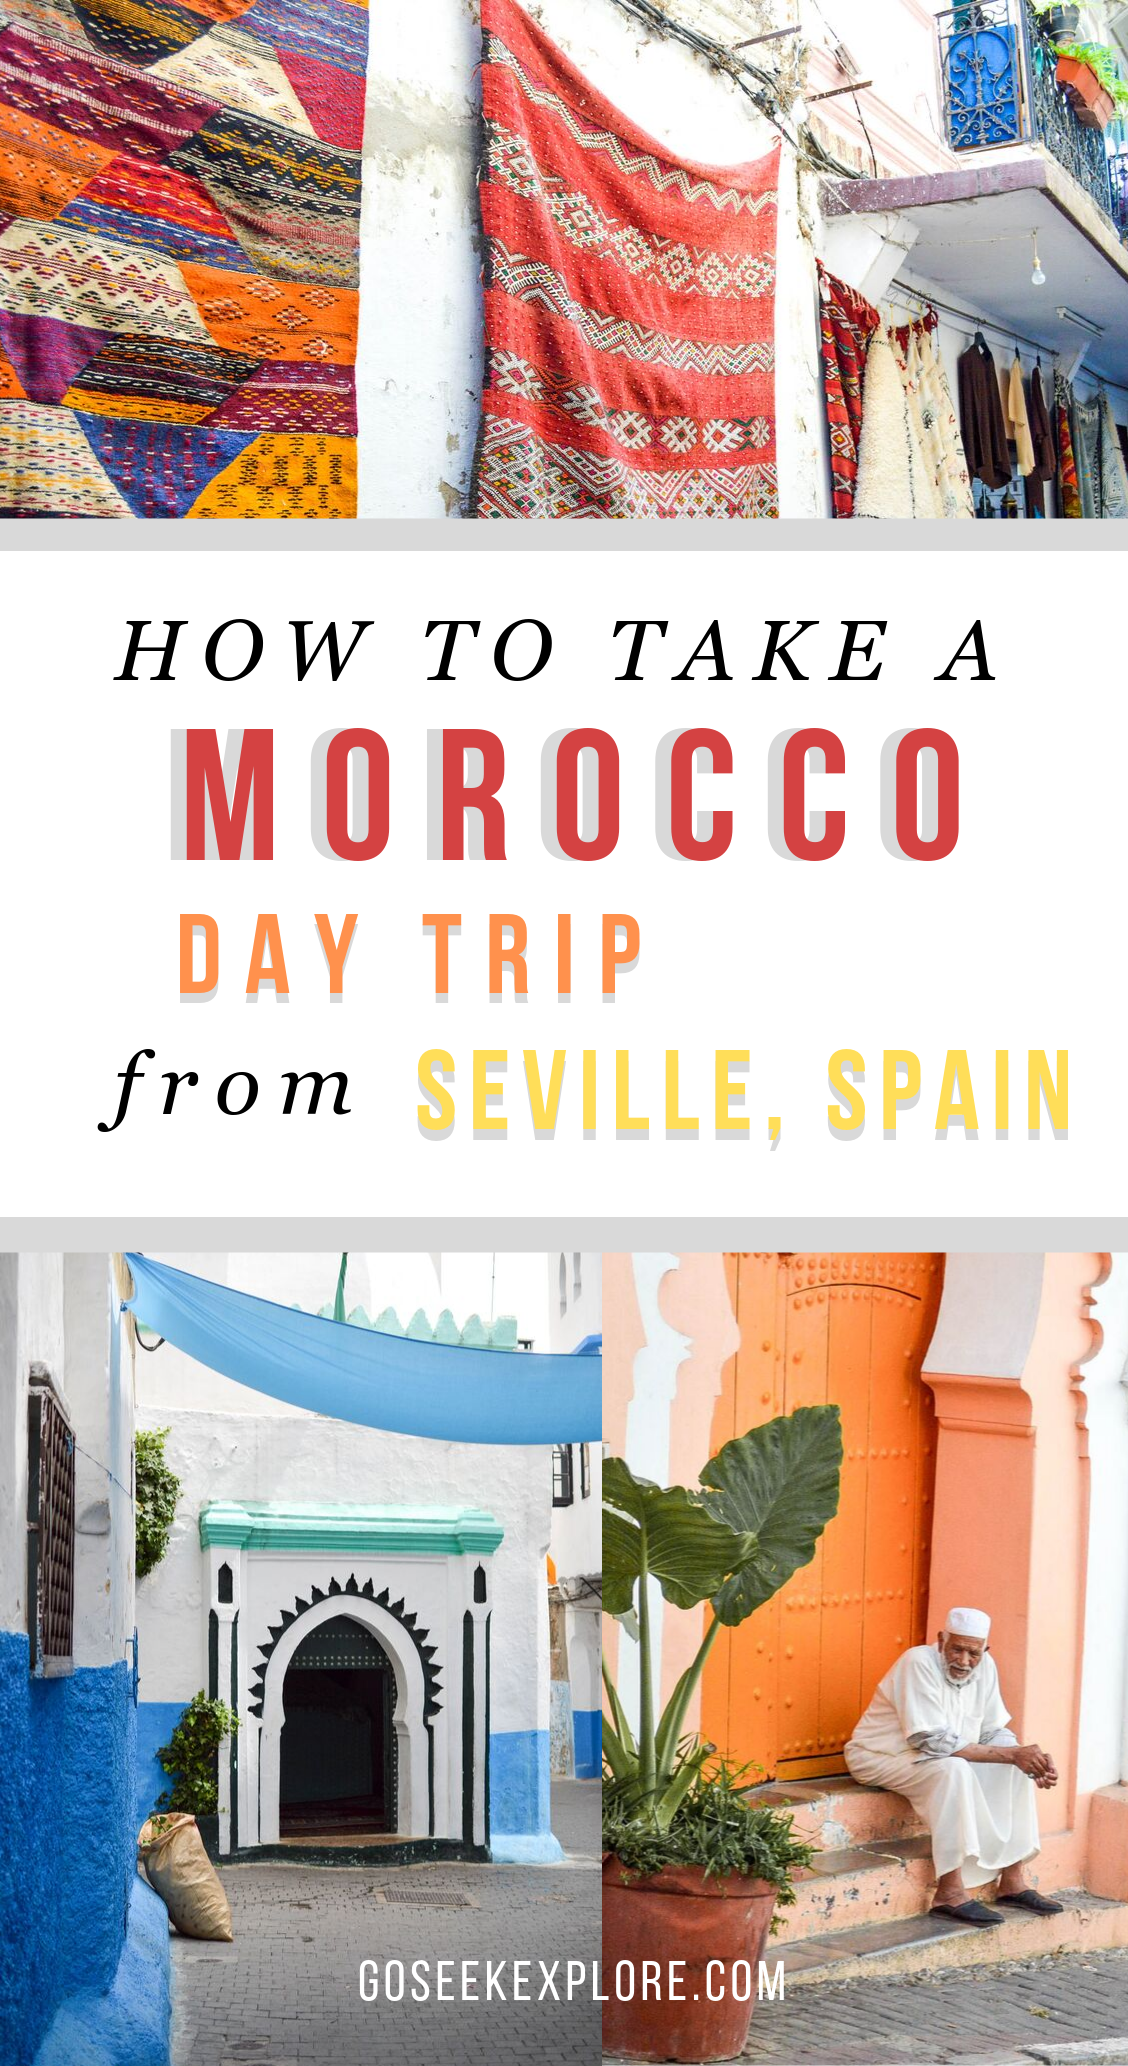 How to Take a Morocco Day Trip from Seville, Spain! Traveling to Morocco's northern coastal town of Tangier is just a short ferry ride from Southern Spain. Here's how we did our day trip, plus advice and tips for you! goseekexplore.com #morocco #moroccotravel #traveltips #seville #spain #europetravel